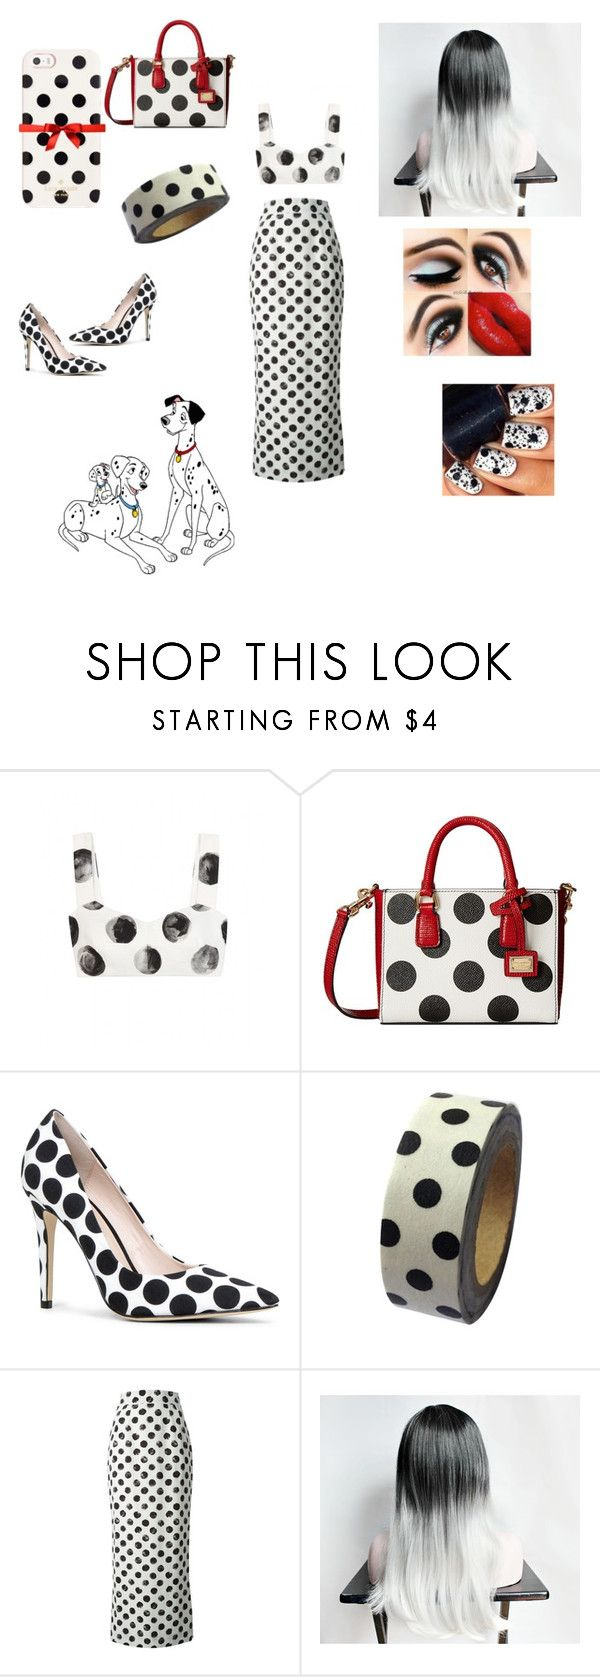 """""""100 Dalmatians"""" by alwaysmovingforward18 ❤ liked on Polyvore featuring Dolce&Gabbana, ALDO, Dress My Cupcake, Kate Spade, women's clothing, women's fashion, women, female, woman and misses"""